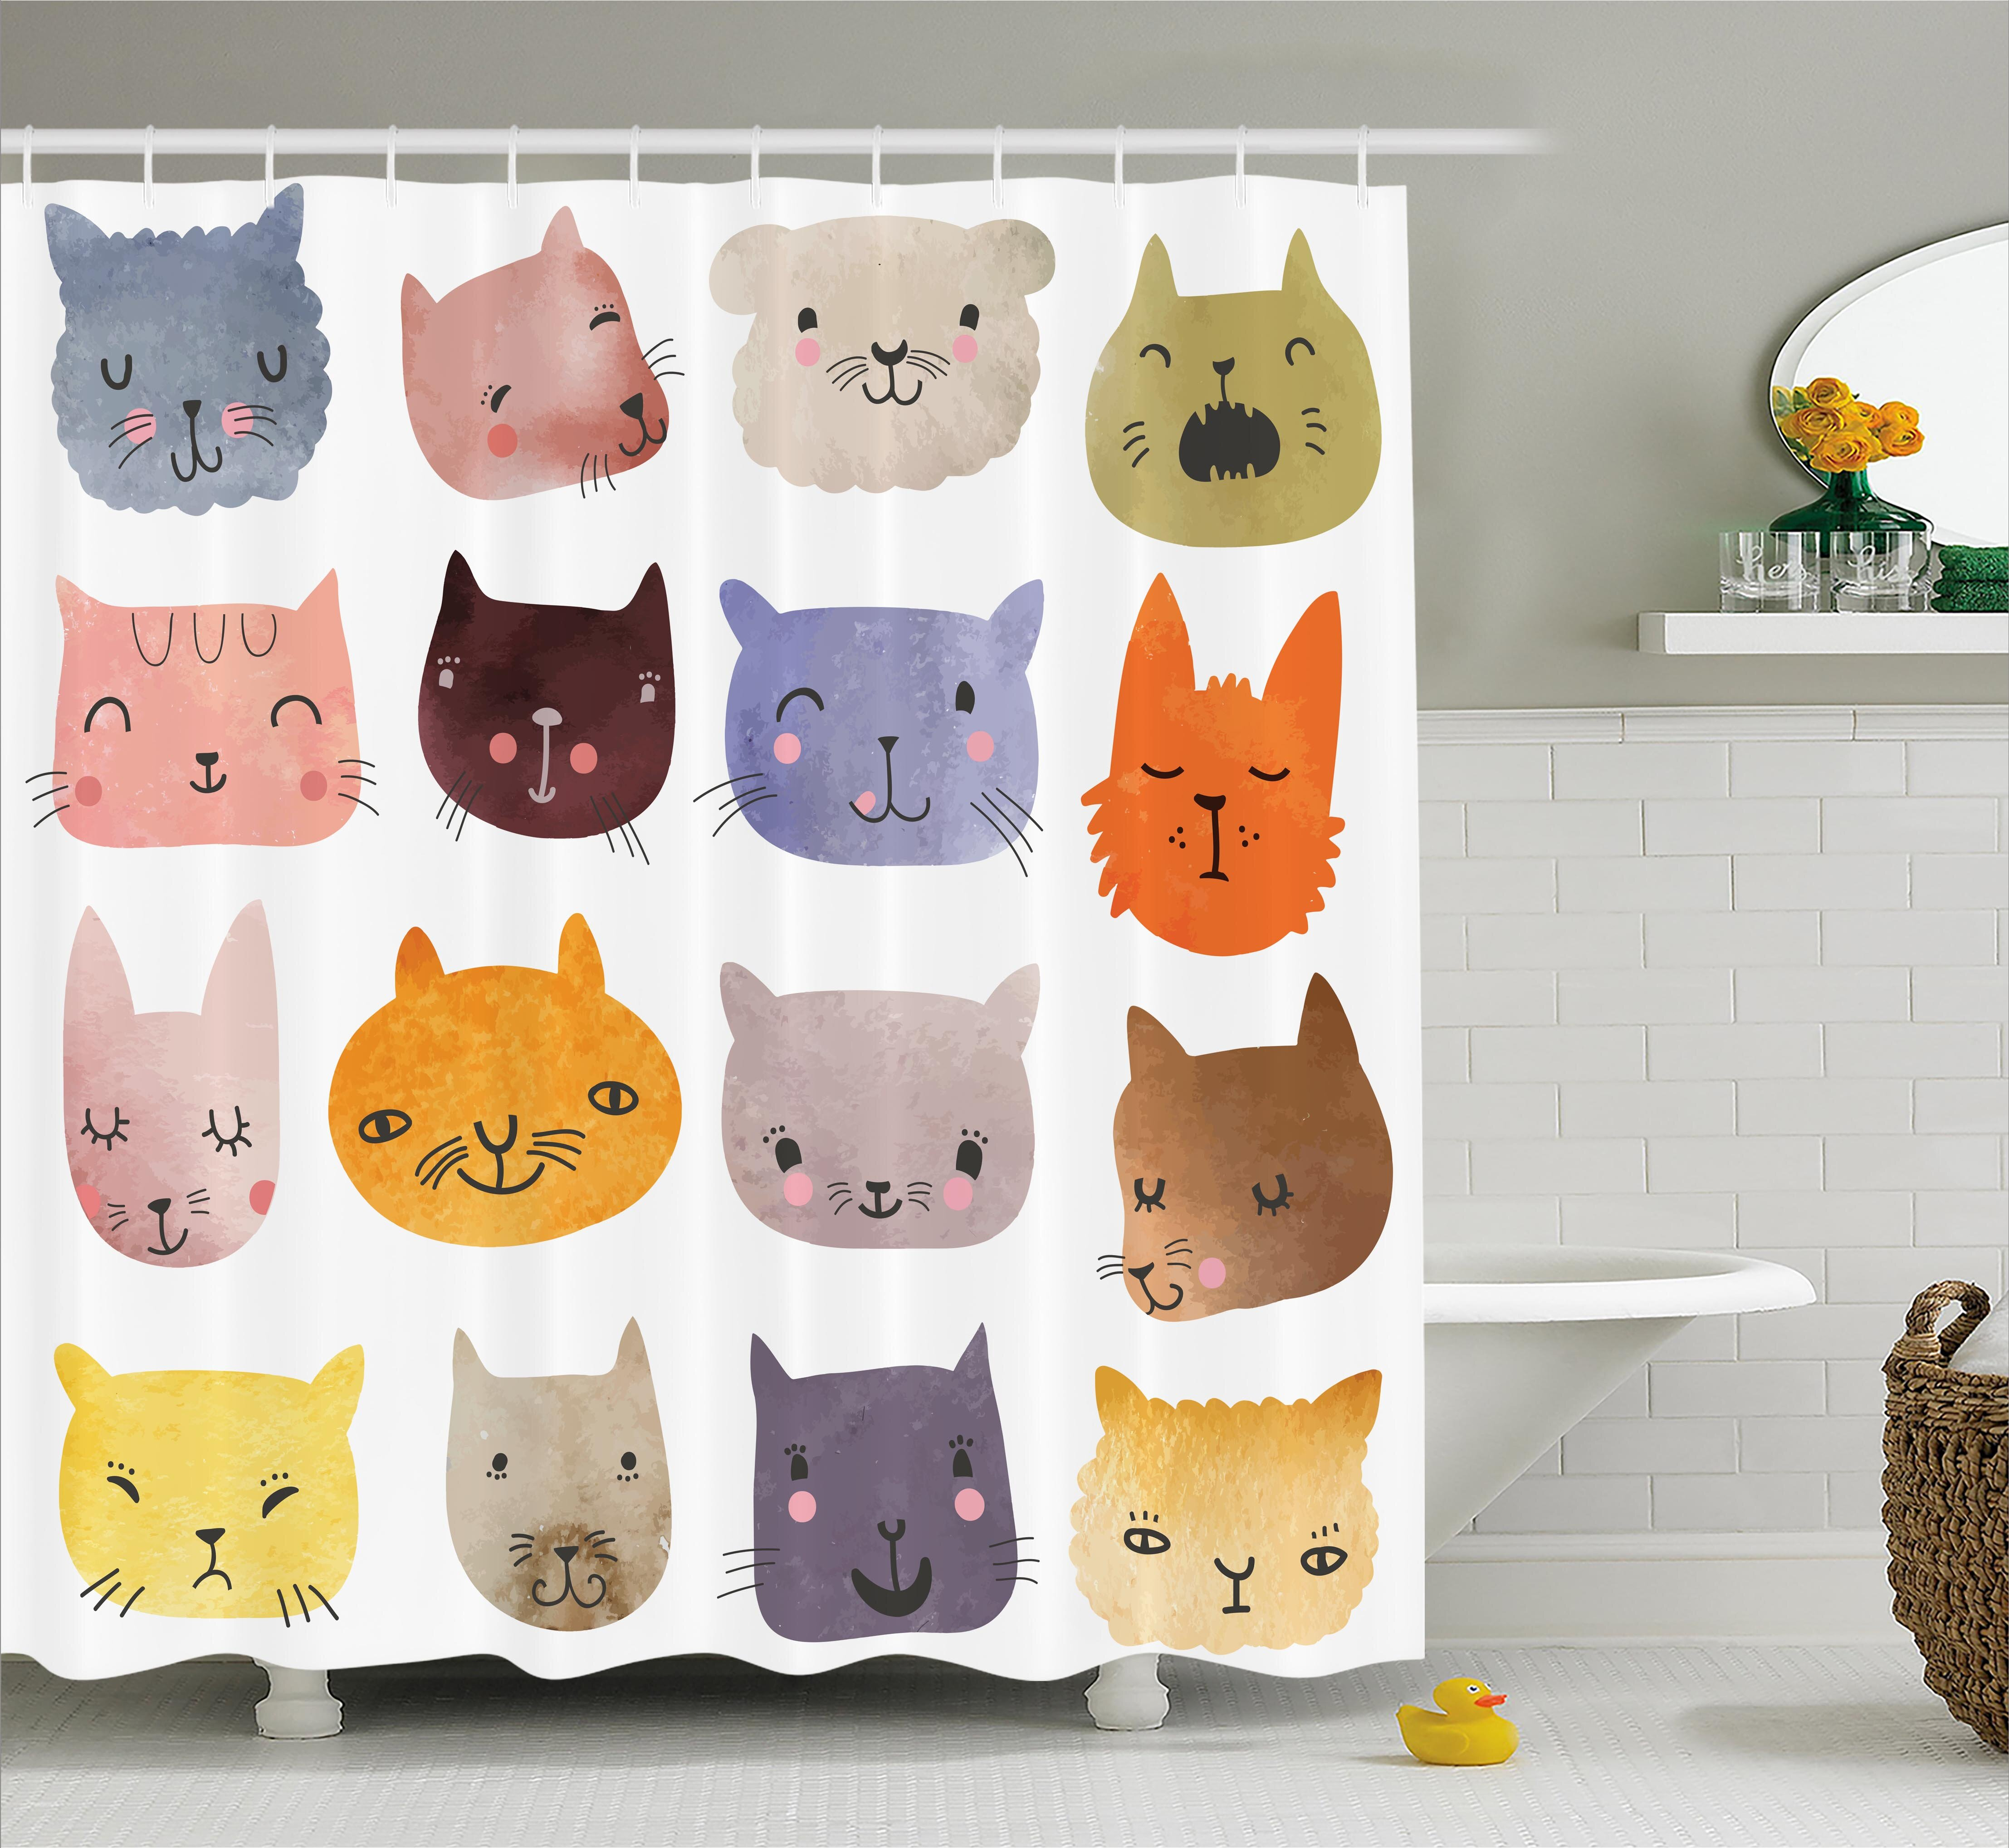 Lottie Colorful Humor Fun Cat Shower Curtain Hooks